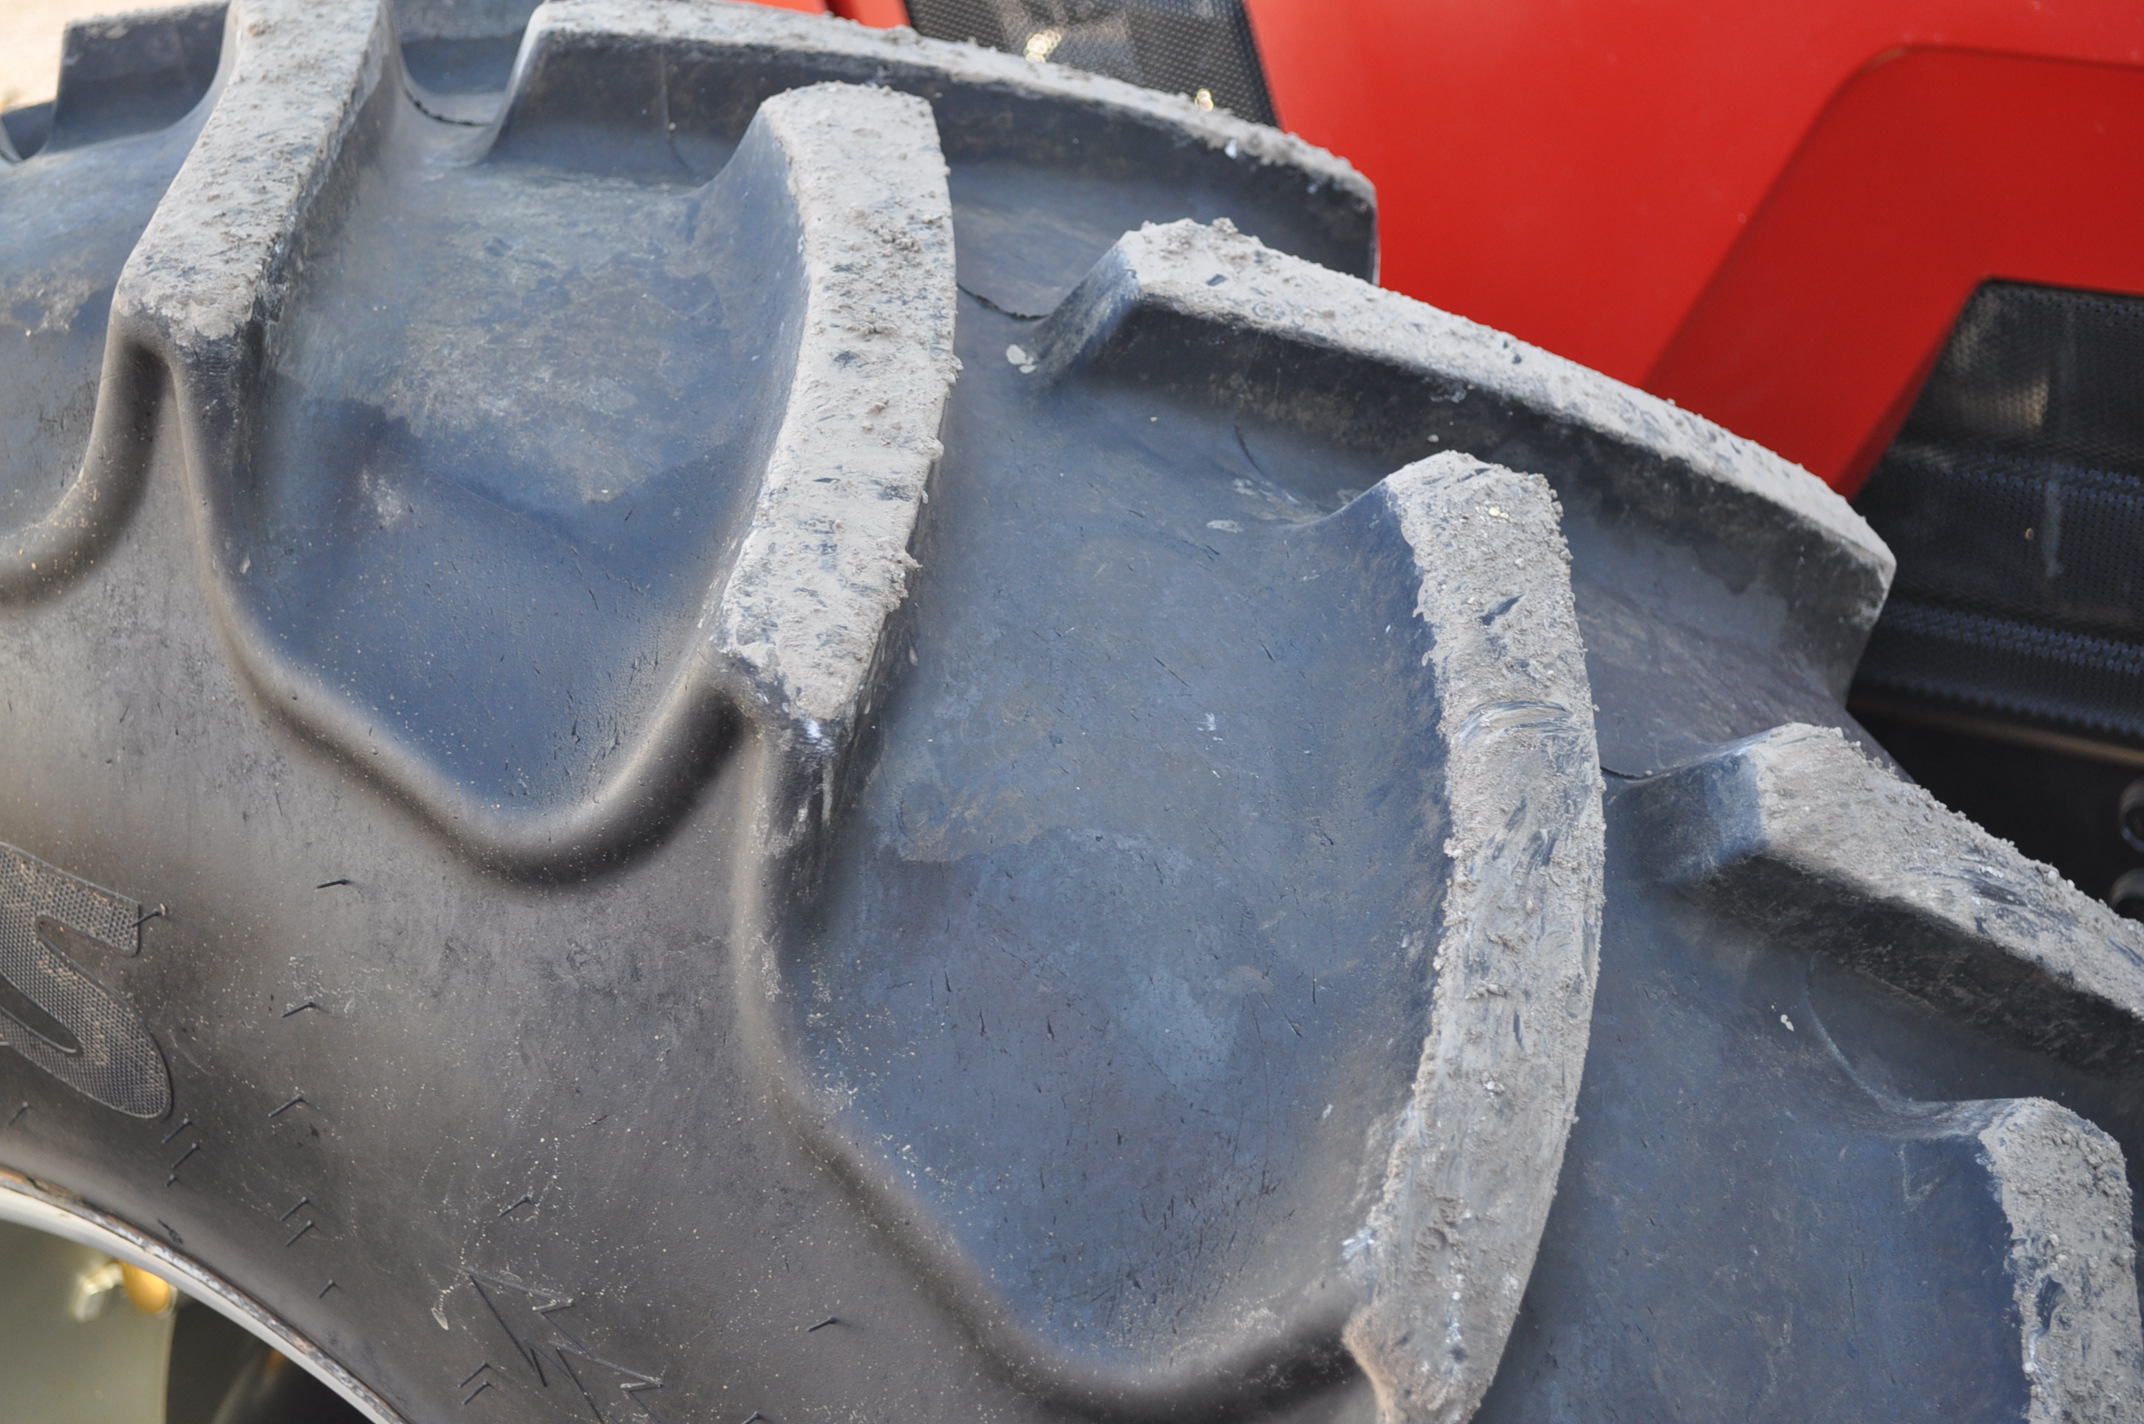 Case IH 7240 MFWD tractor, 460/85R46 rear duals, 420/85R30 front, 18 spd powershift, 4 reverse, - Image 7 of 20